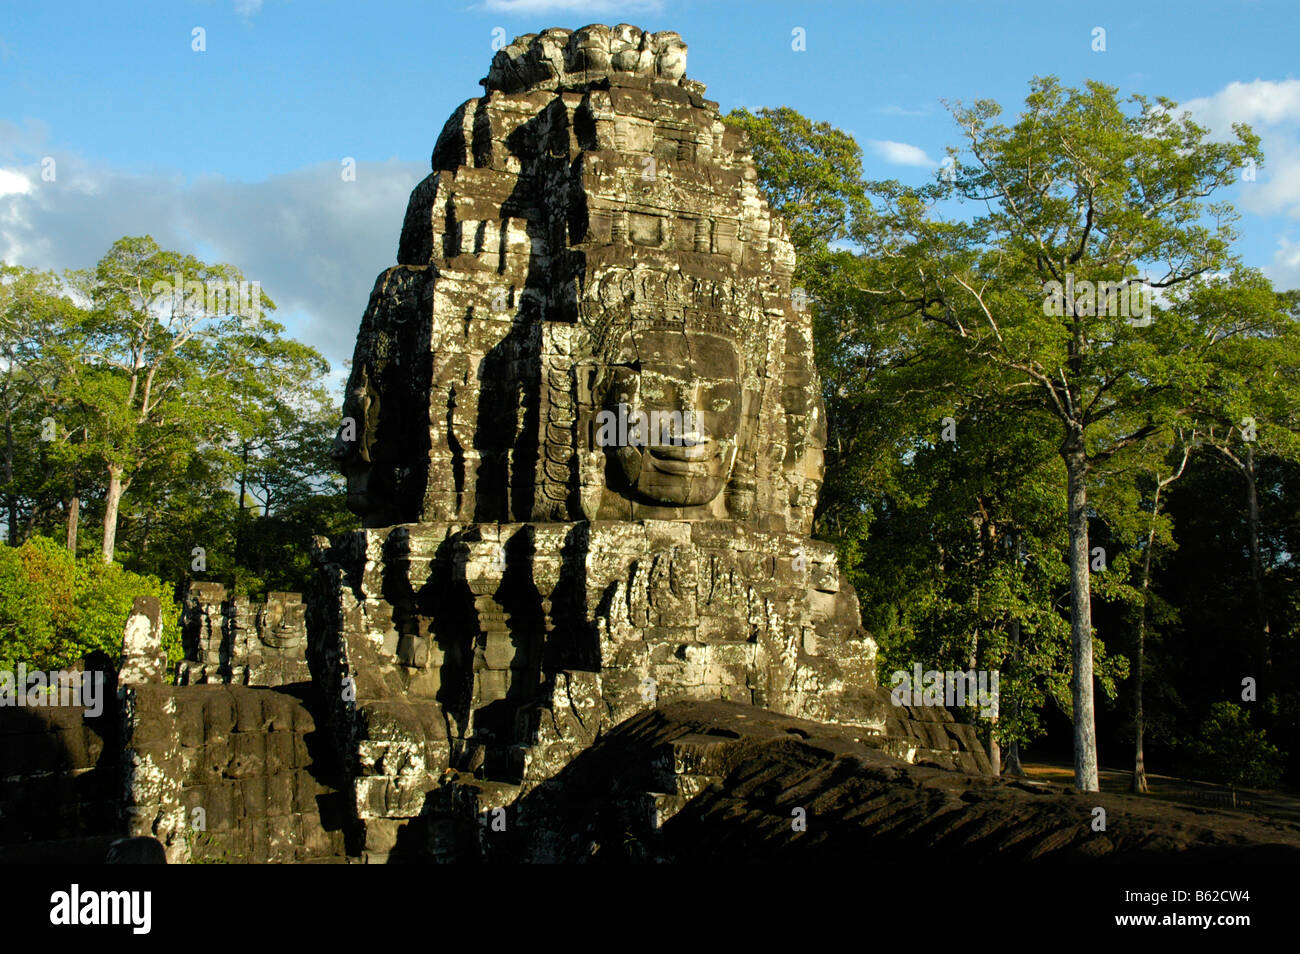 Tower with stone relief of a face, The Bayon Temple in Angkor Thom, with forest, Siem Reap, Cambodia Stock Photo